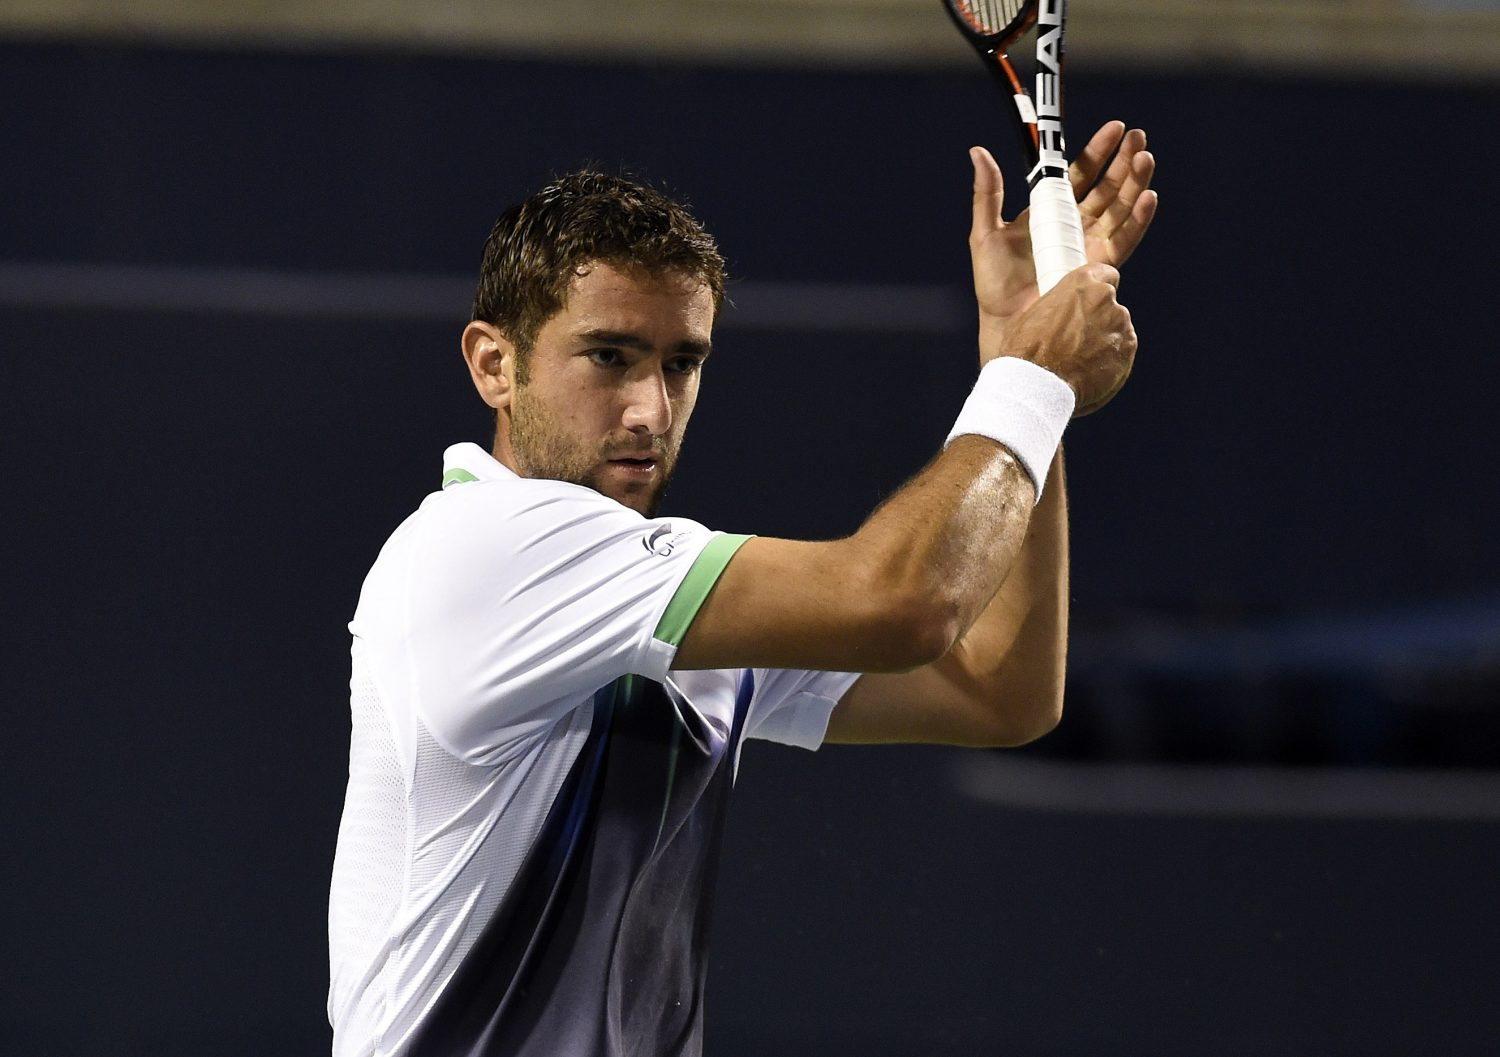 Aug 7, 2014; Toronto, Ontario, Canada; Marian Cilic (CRO) plays a forehand against Roger Federer (SUI) on day four of the Rogers Cup tennis tournament at Rexall Centre. Mandatory Credit: Peter Llewellyn-USA TODAY Sports - RTR41N8G